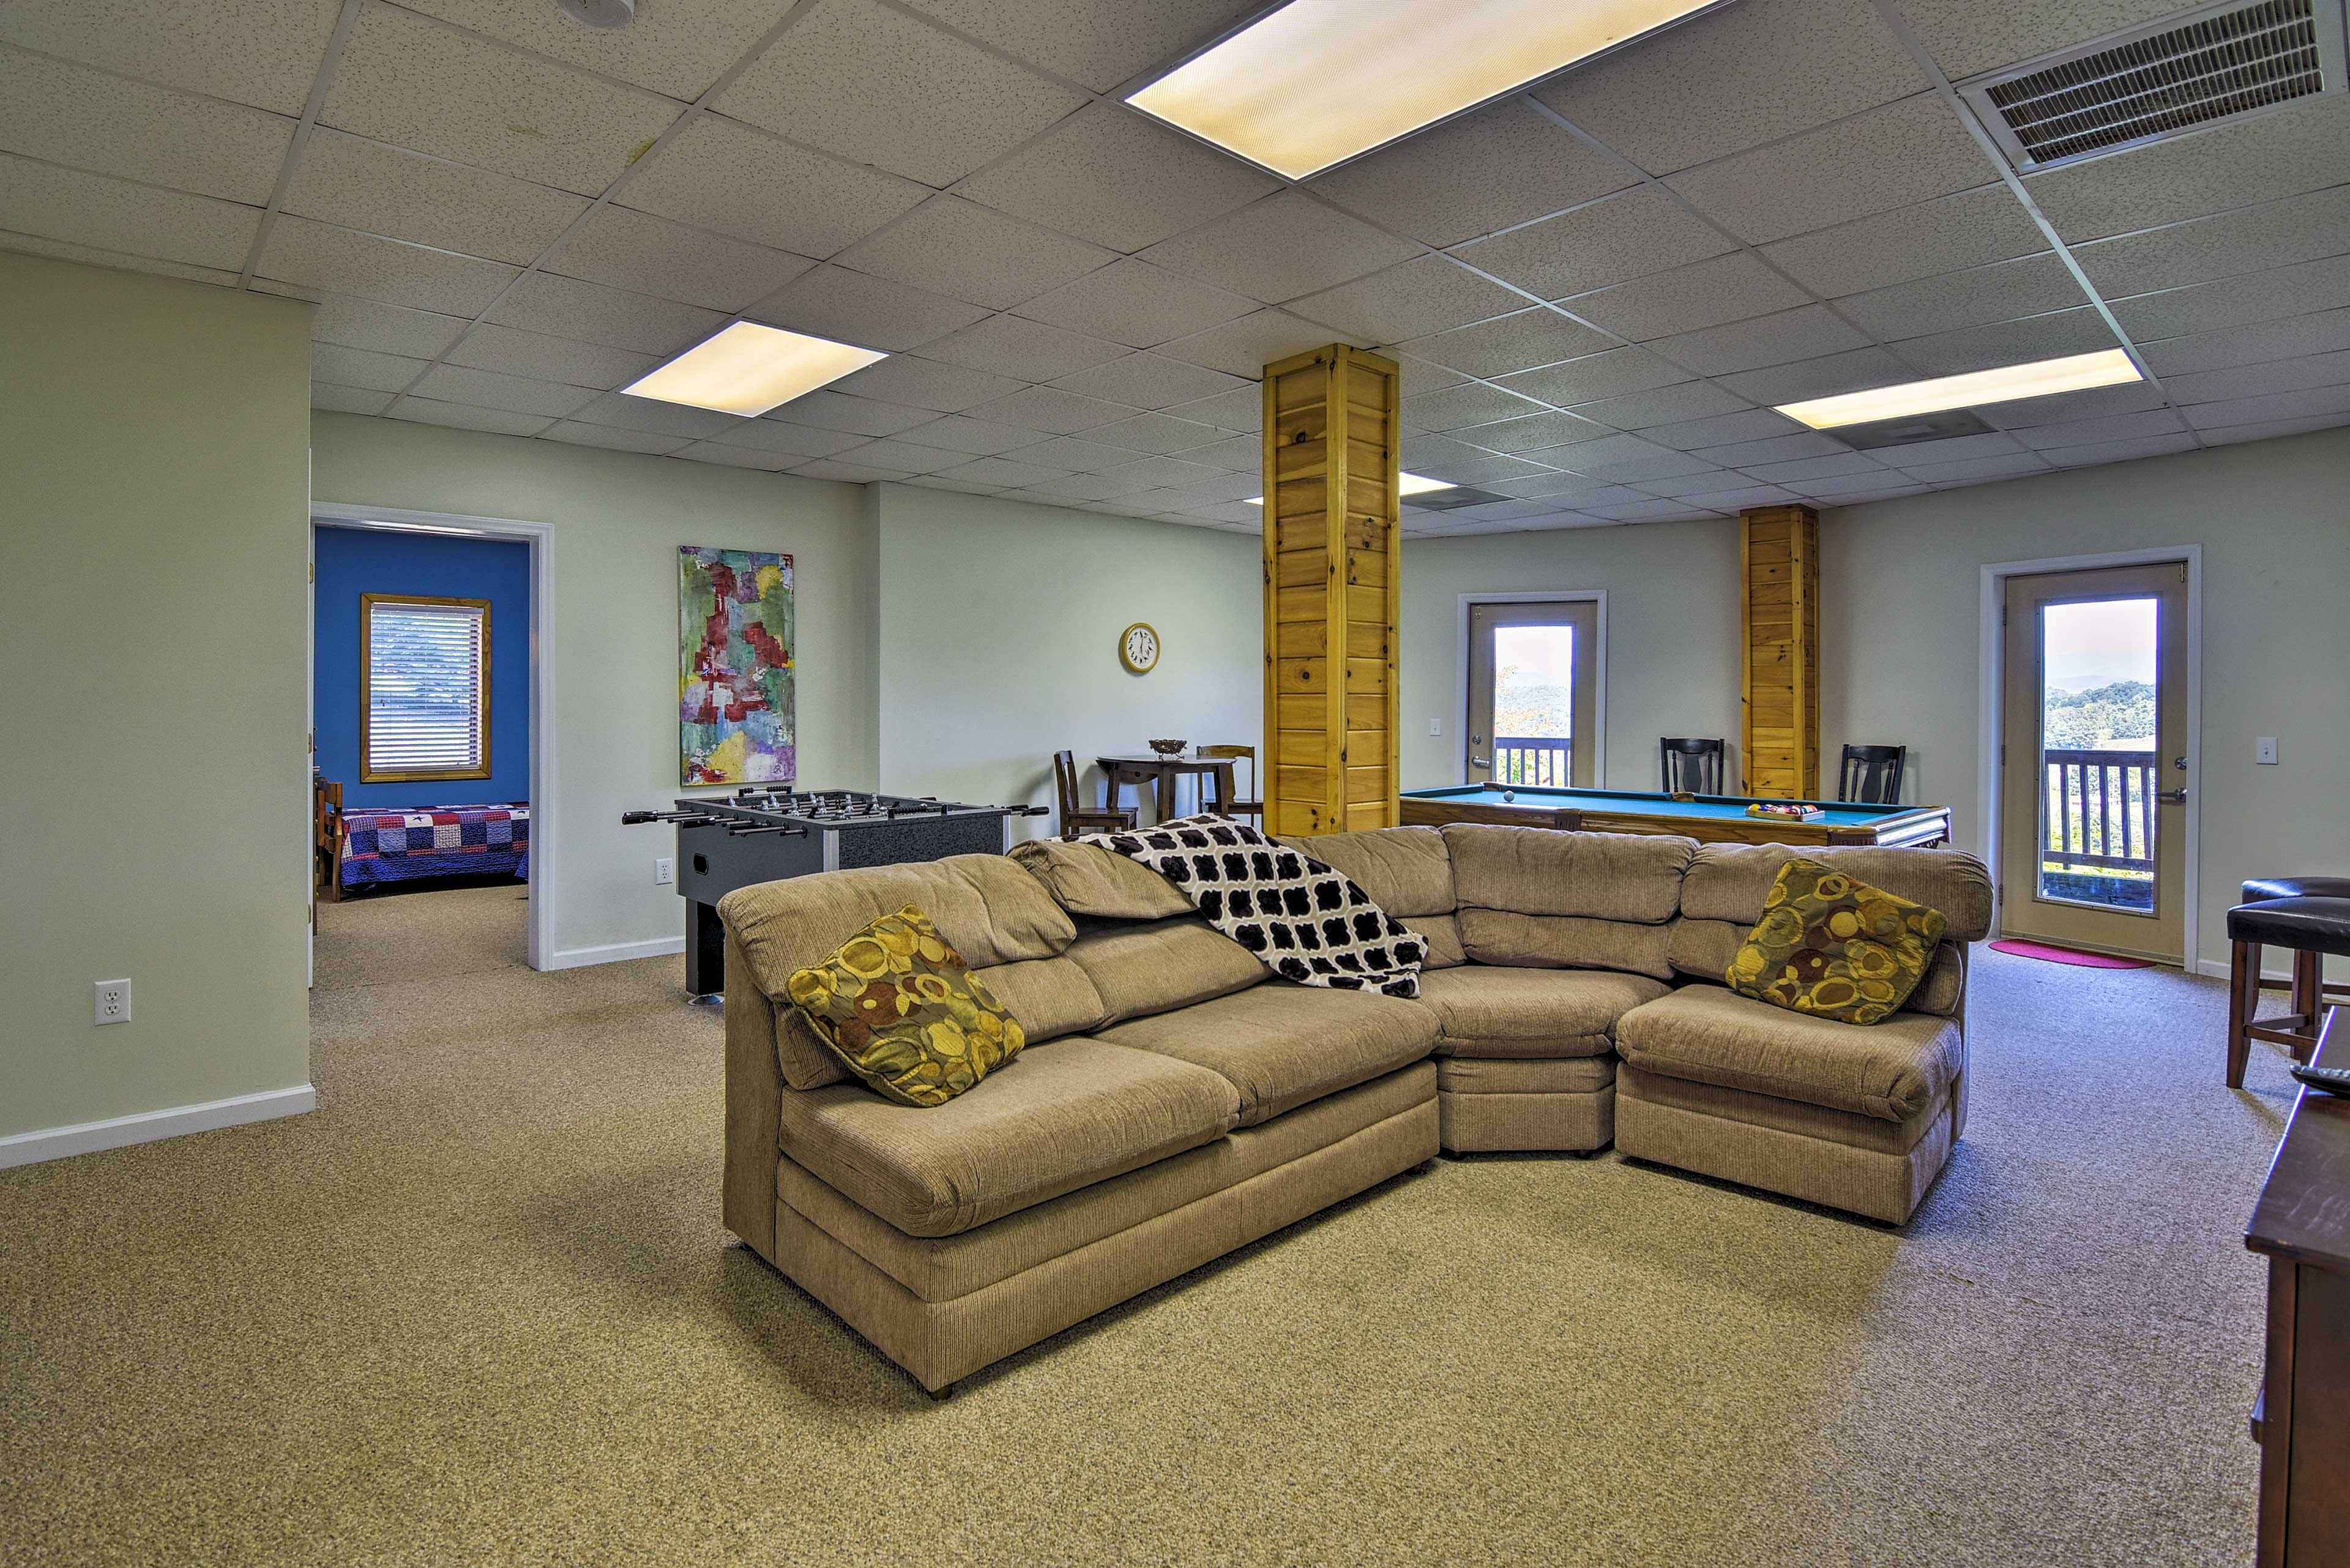 Play a game of foosball, ping pong, and more in the game room downstairs!